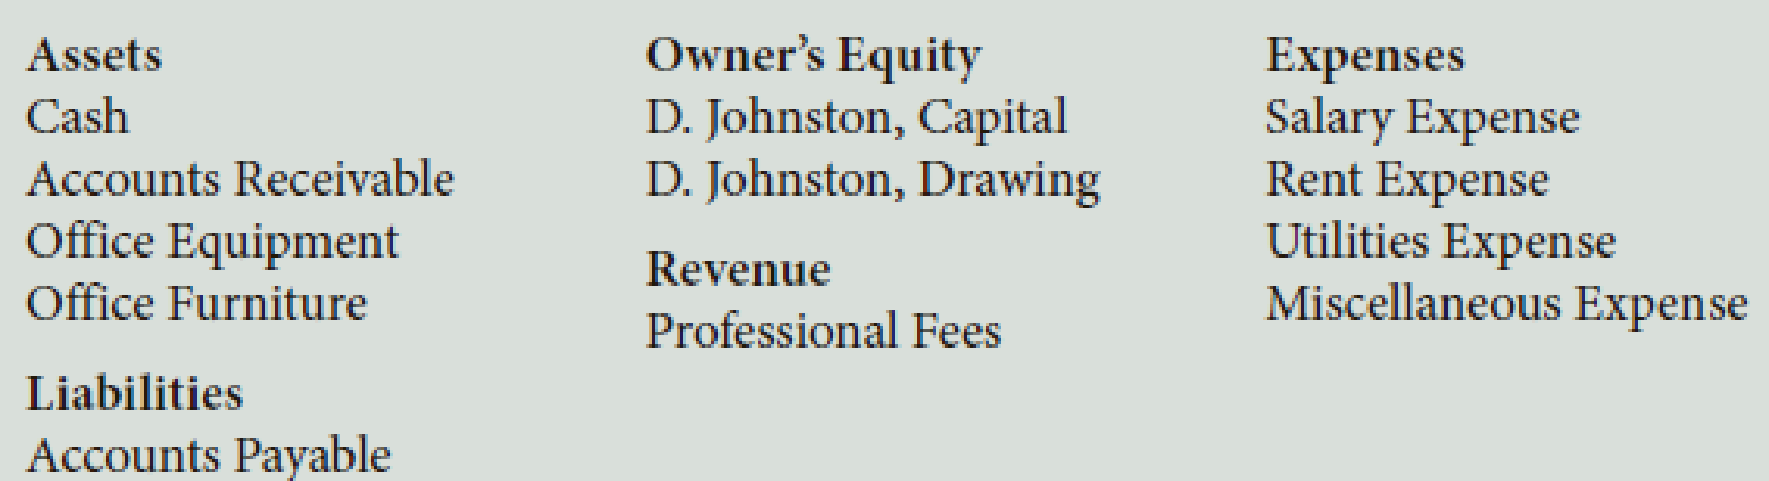 Chapter 2, Problem 3PB, D. Johnston, a physical therapist, opened Johnstons Clinic. His accountant provided the following